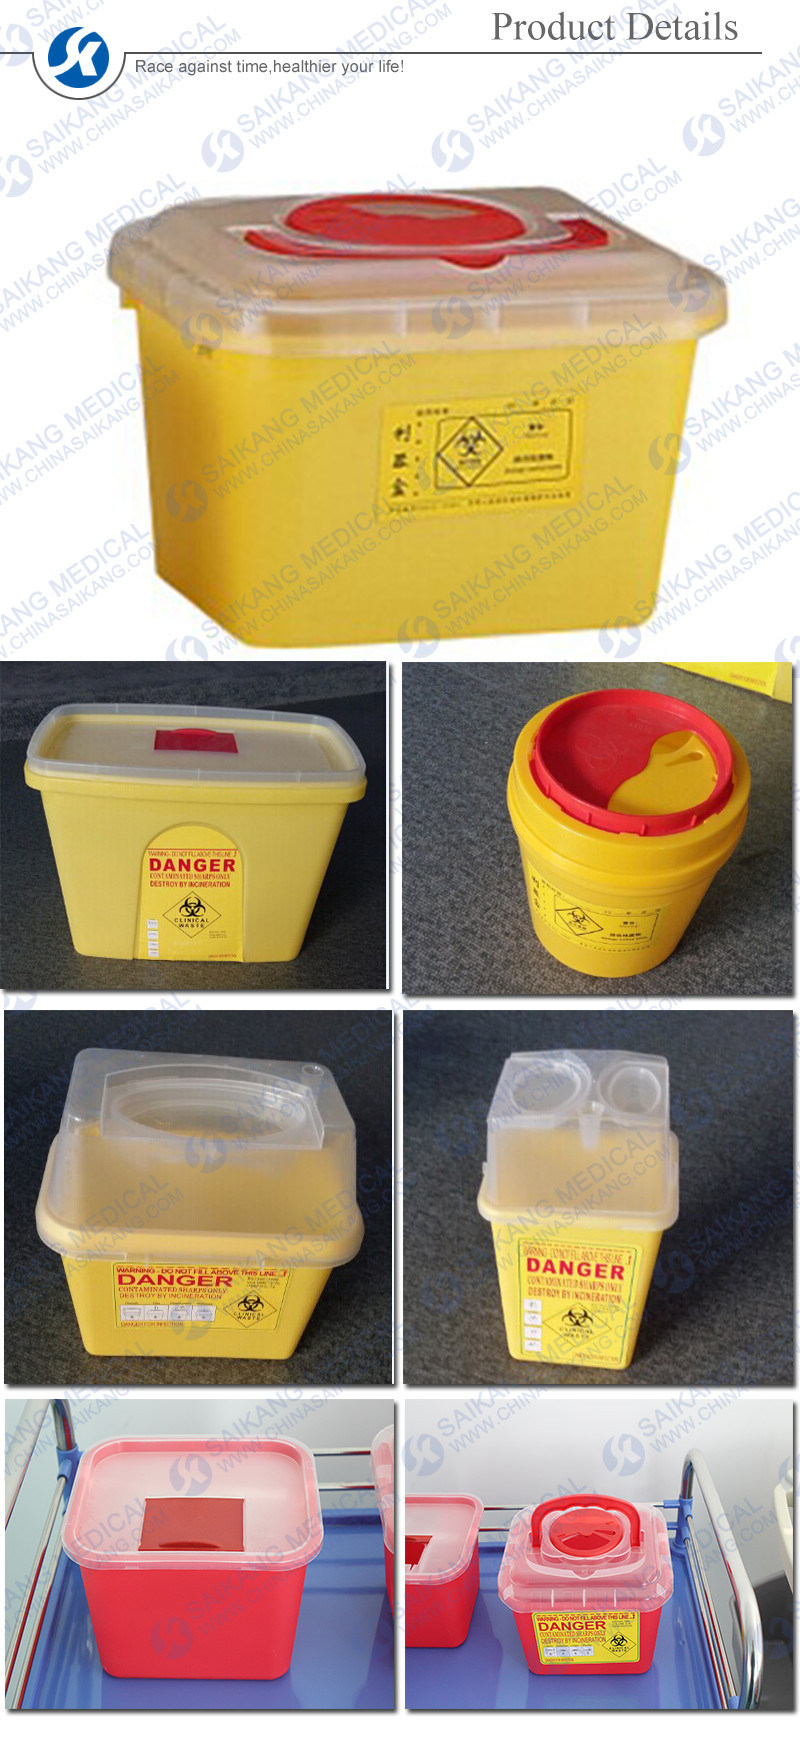 Hospital Plastic Sharps Containers